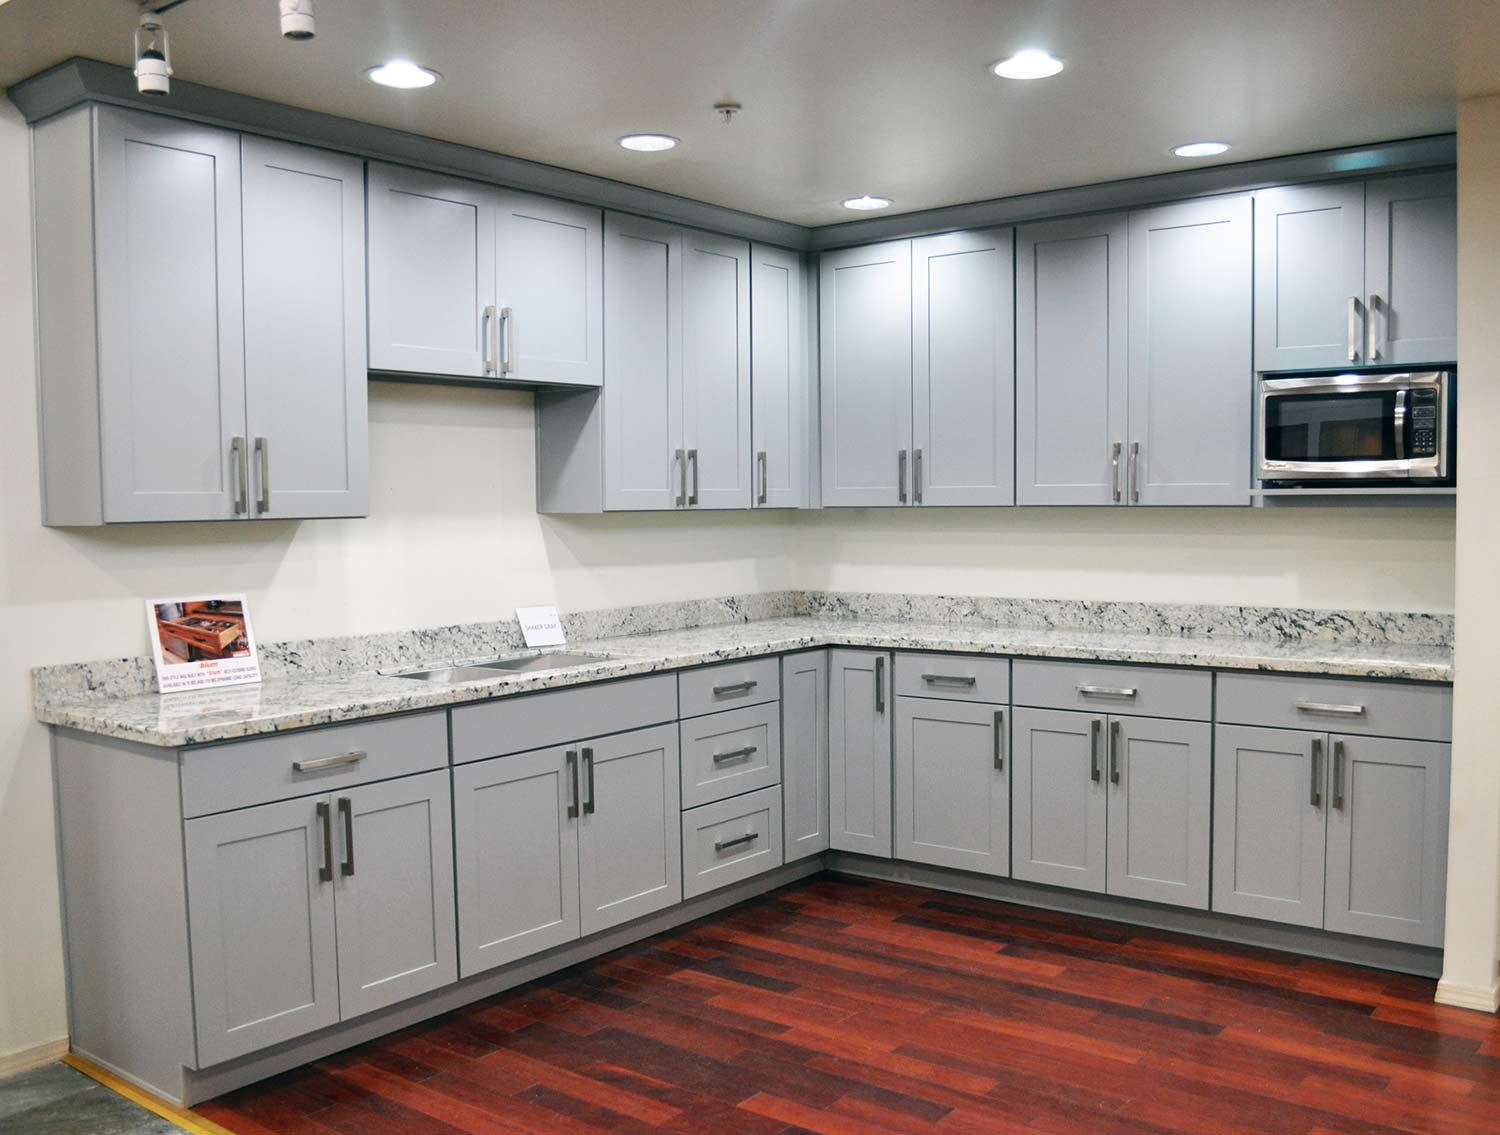 Kitchen Cabinets Solid Wood Construction Maple Gs Building Supply Inc